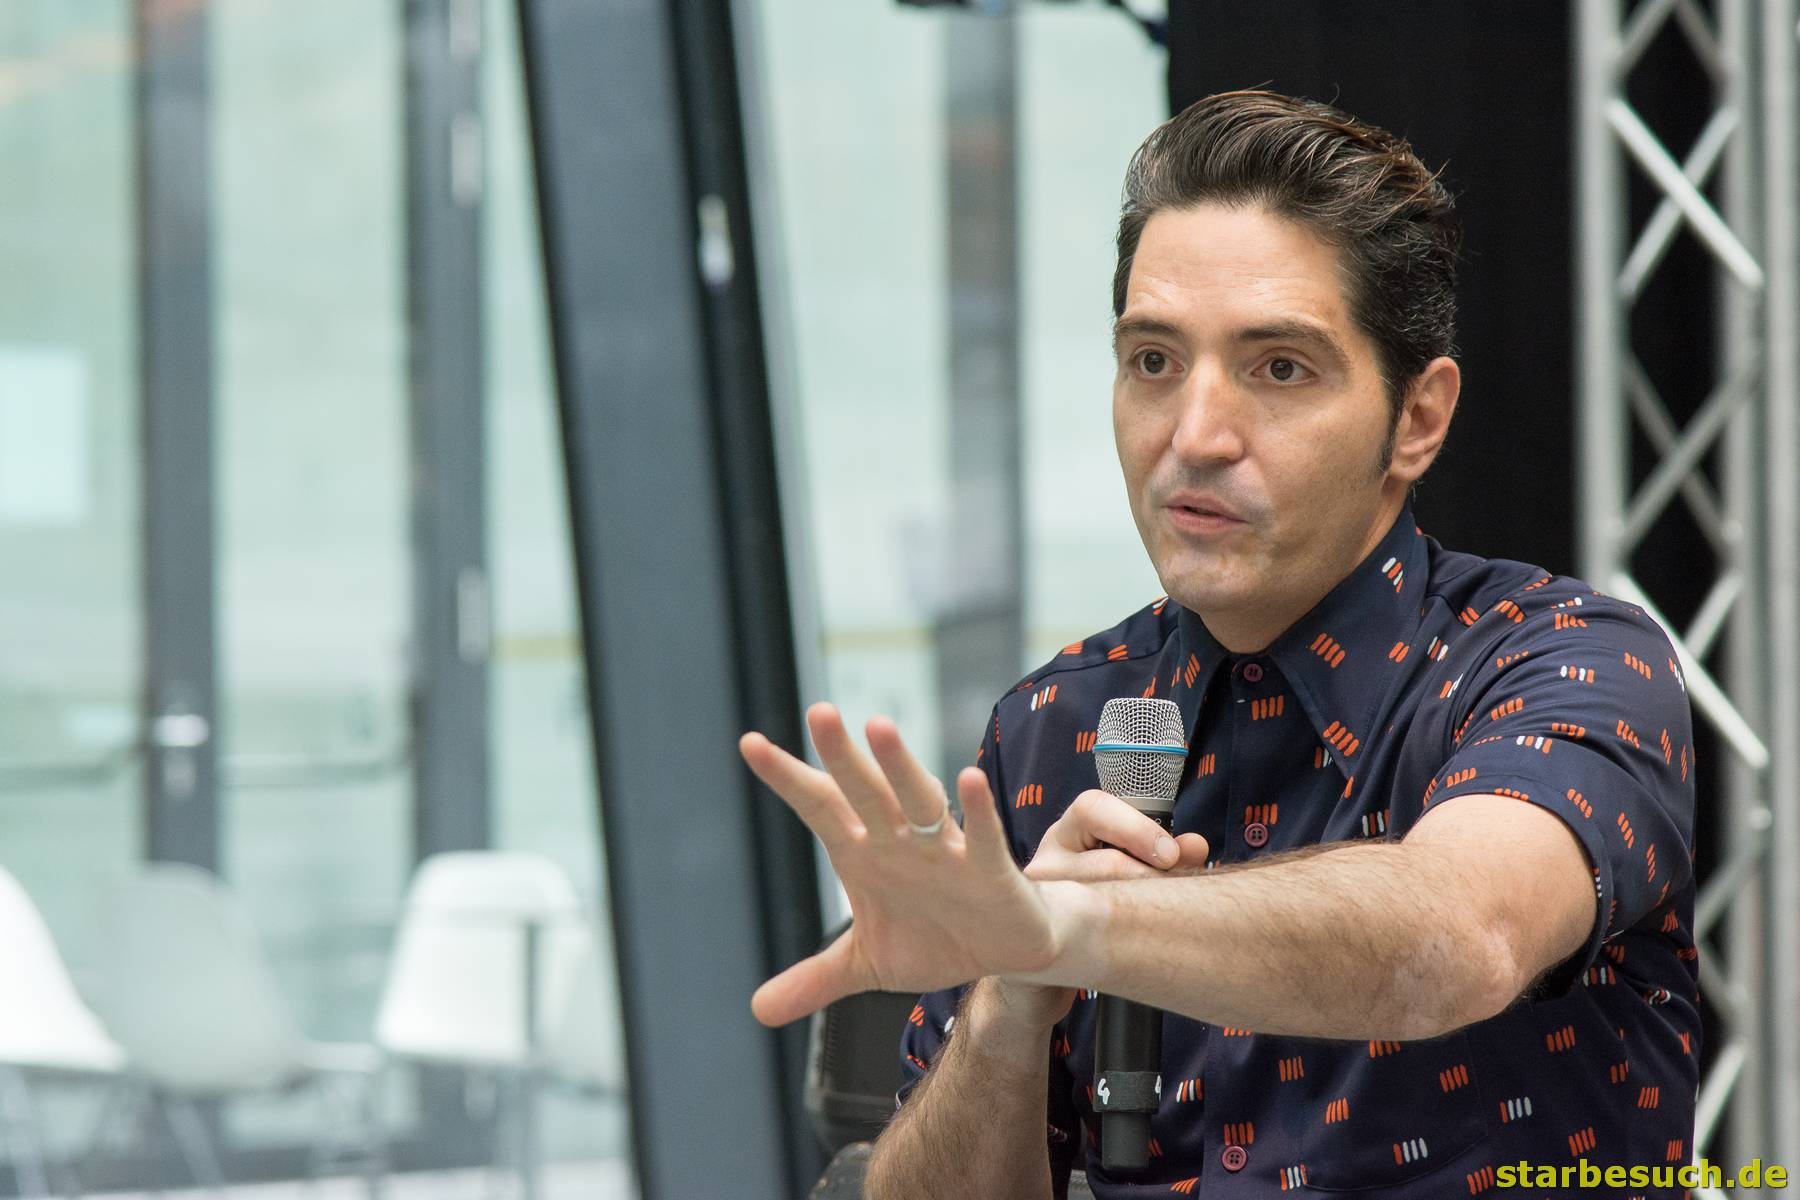 July 1st 2017. Stuttgart, Germany. David Dastmalchian at Comic-Con Stuttgart invites fans and cos-players to meet celebrities and comic artists in panels, Q&As, photo and signing sessions